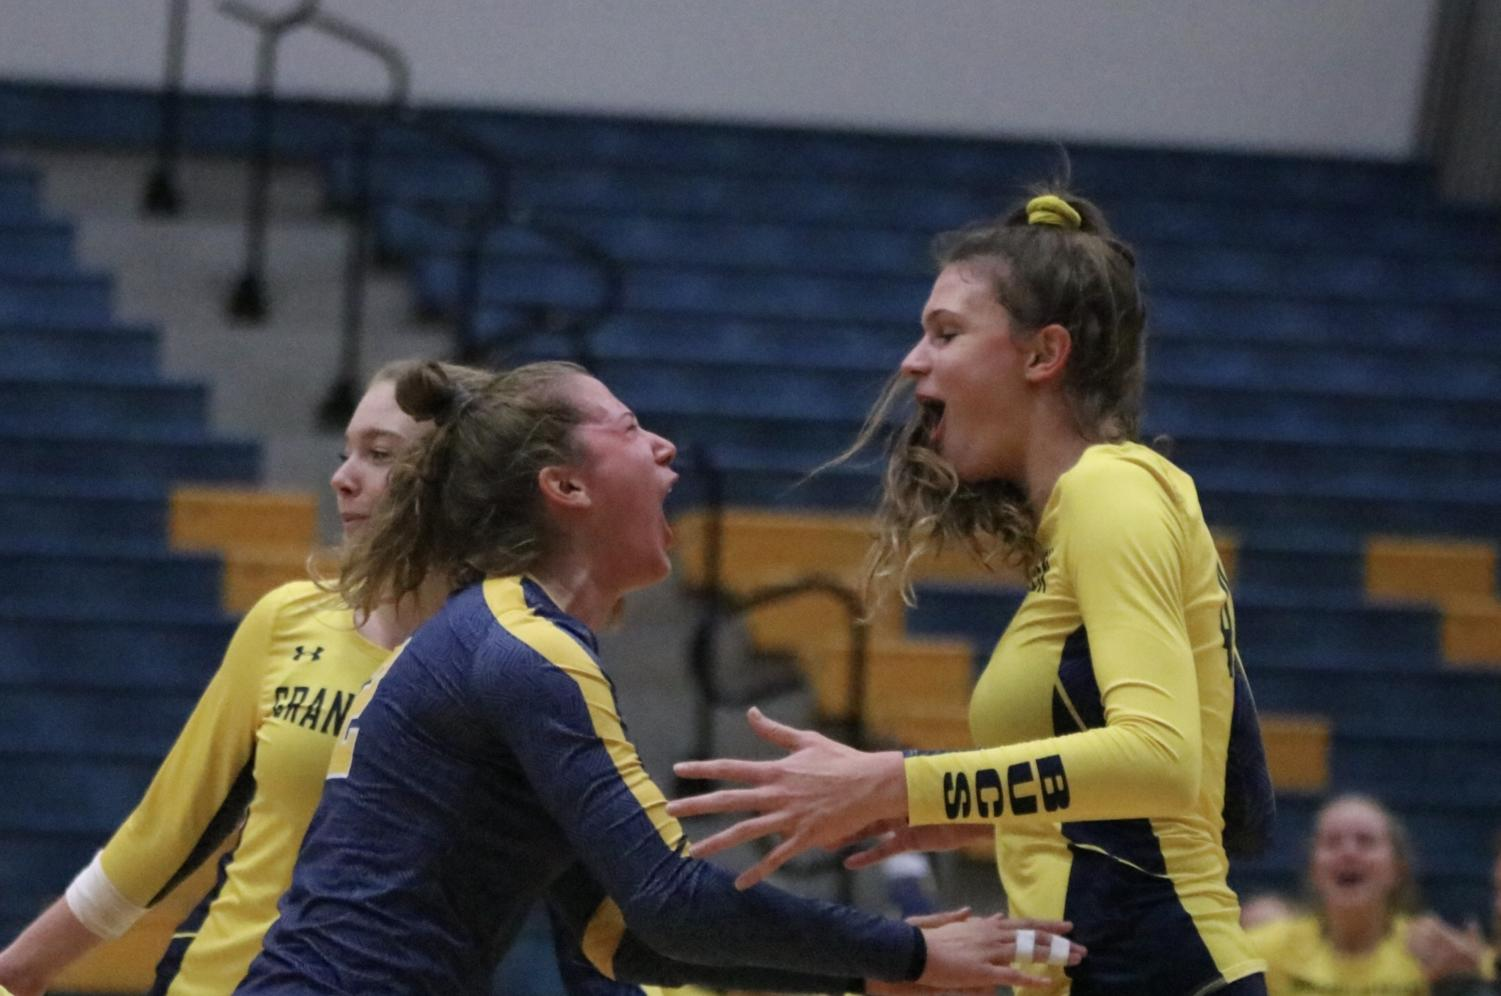 """Senior Ashley Slater gets the game point kill to secure the win for the Bucs and break a school record. """"It's really exciting,"""" Slater said. """"We've had some great players come through Grand Haven. So, to be a part of that and break some records is really exciting."""" Her teammates are very proud of her accomplishments. """"She has come such a long way,"""" Senior Reilly Swierbut said. """"I wouldn't want to go through this whole experience without having her on my side."""""""